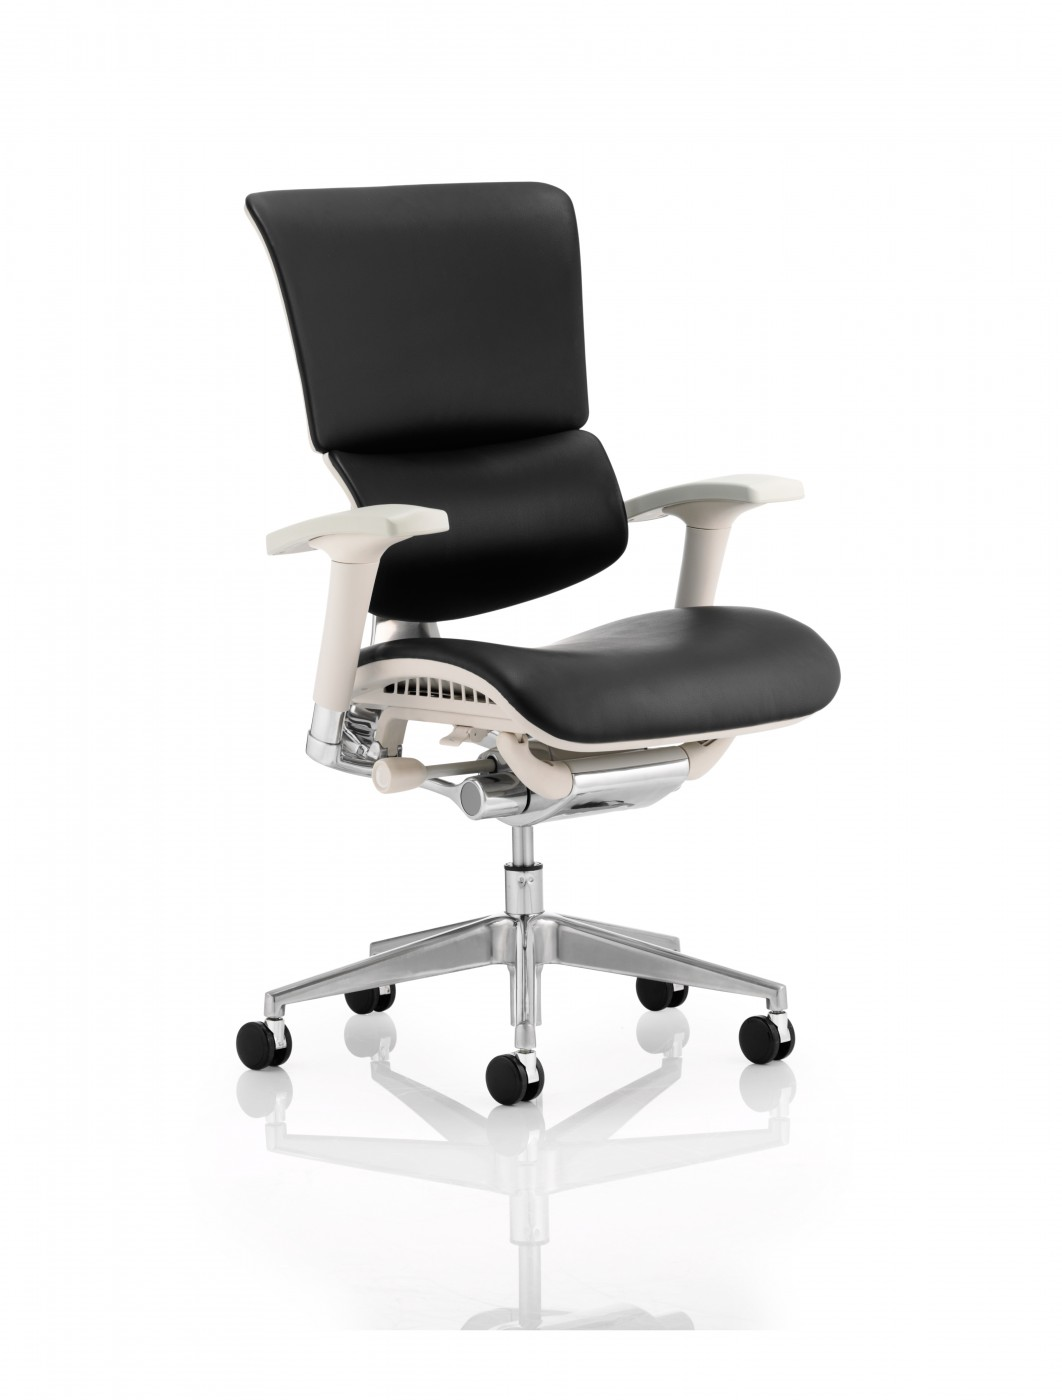 Ergo Dynamic Leather Office Chair EO01GFBLTHR 121 Office Furniture